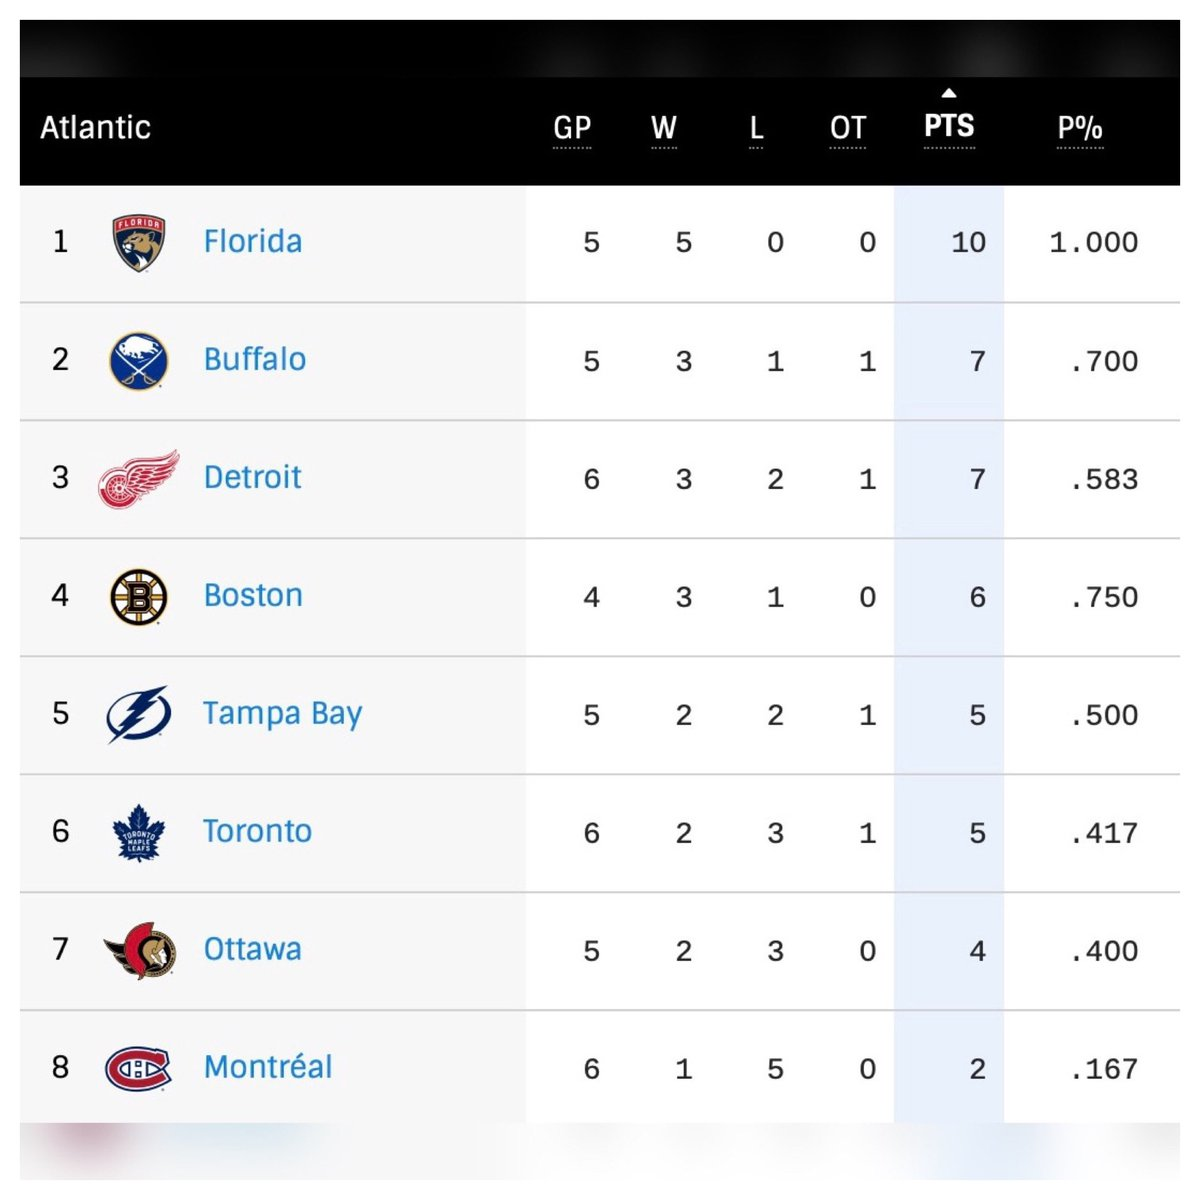 #NHL Standings After Week 2 #Canucks #ALLCAPS #Yotes #NJDevils #FlyTogether #Flames #NHLTwitter🏒 https://t.co/q7jPvCw3yI.